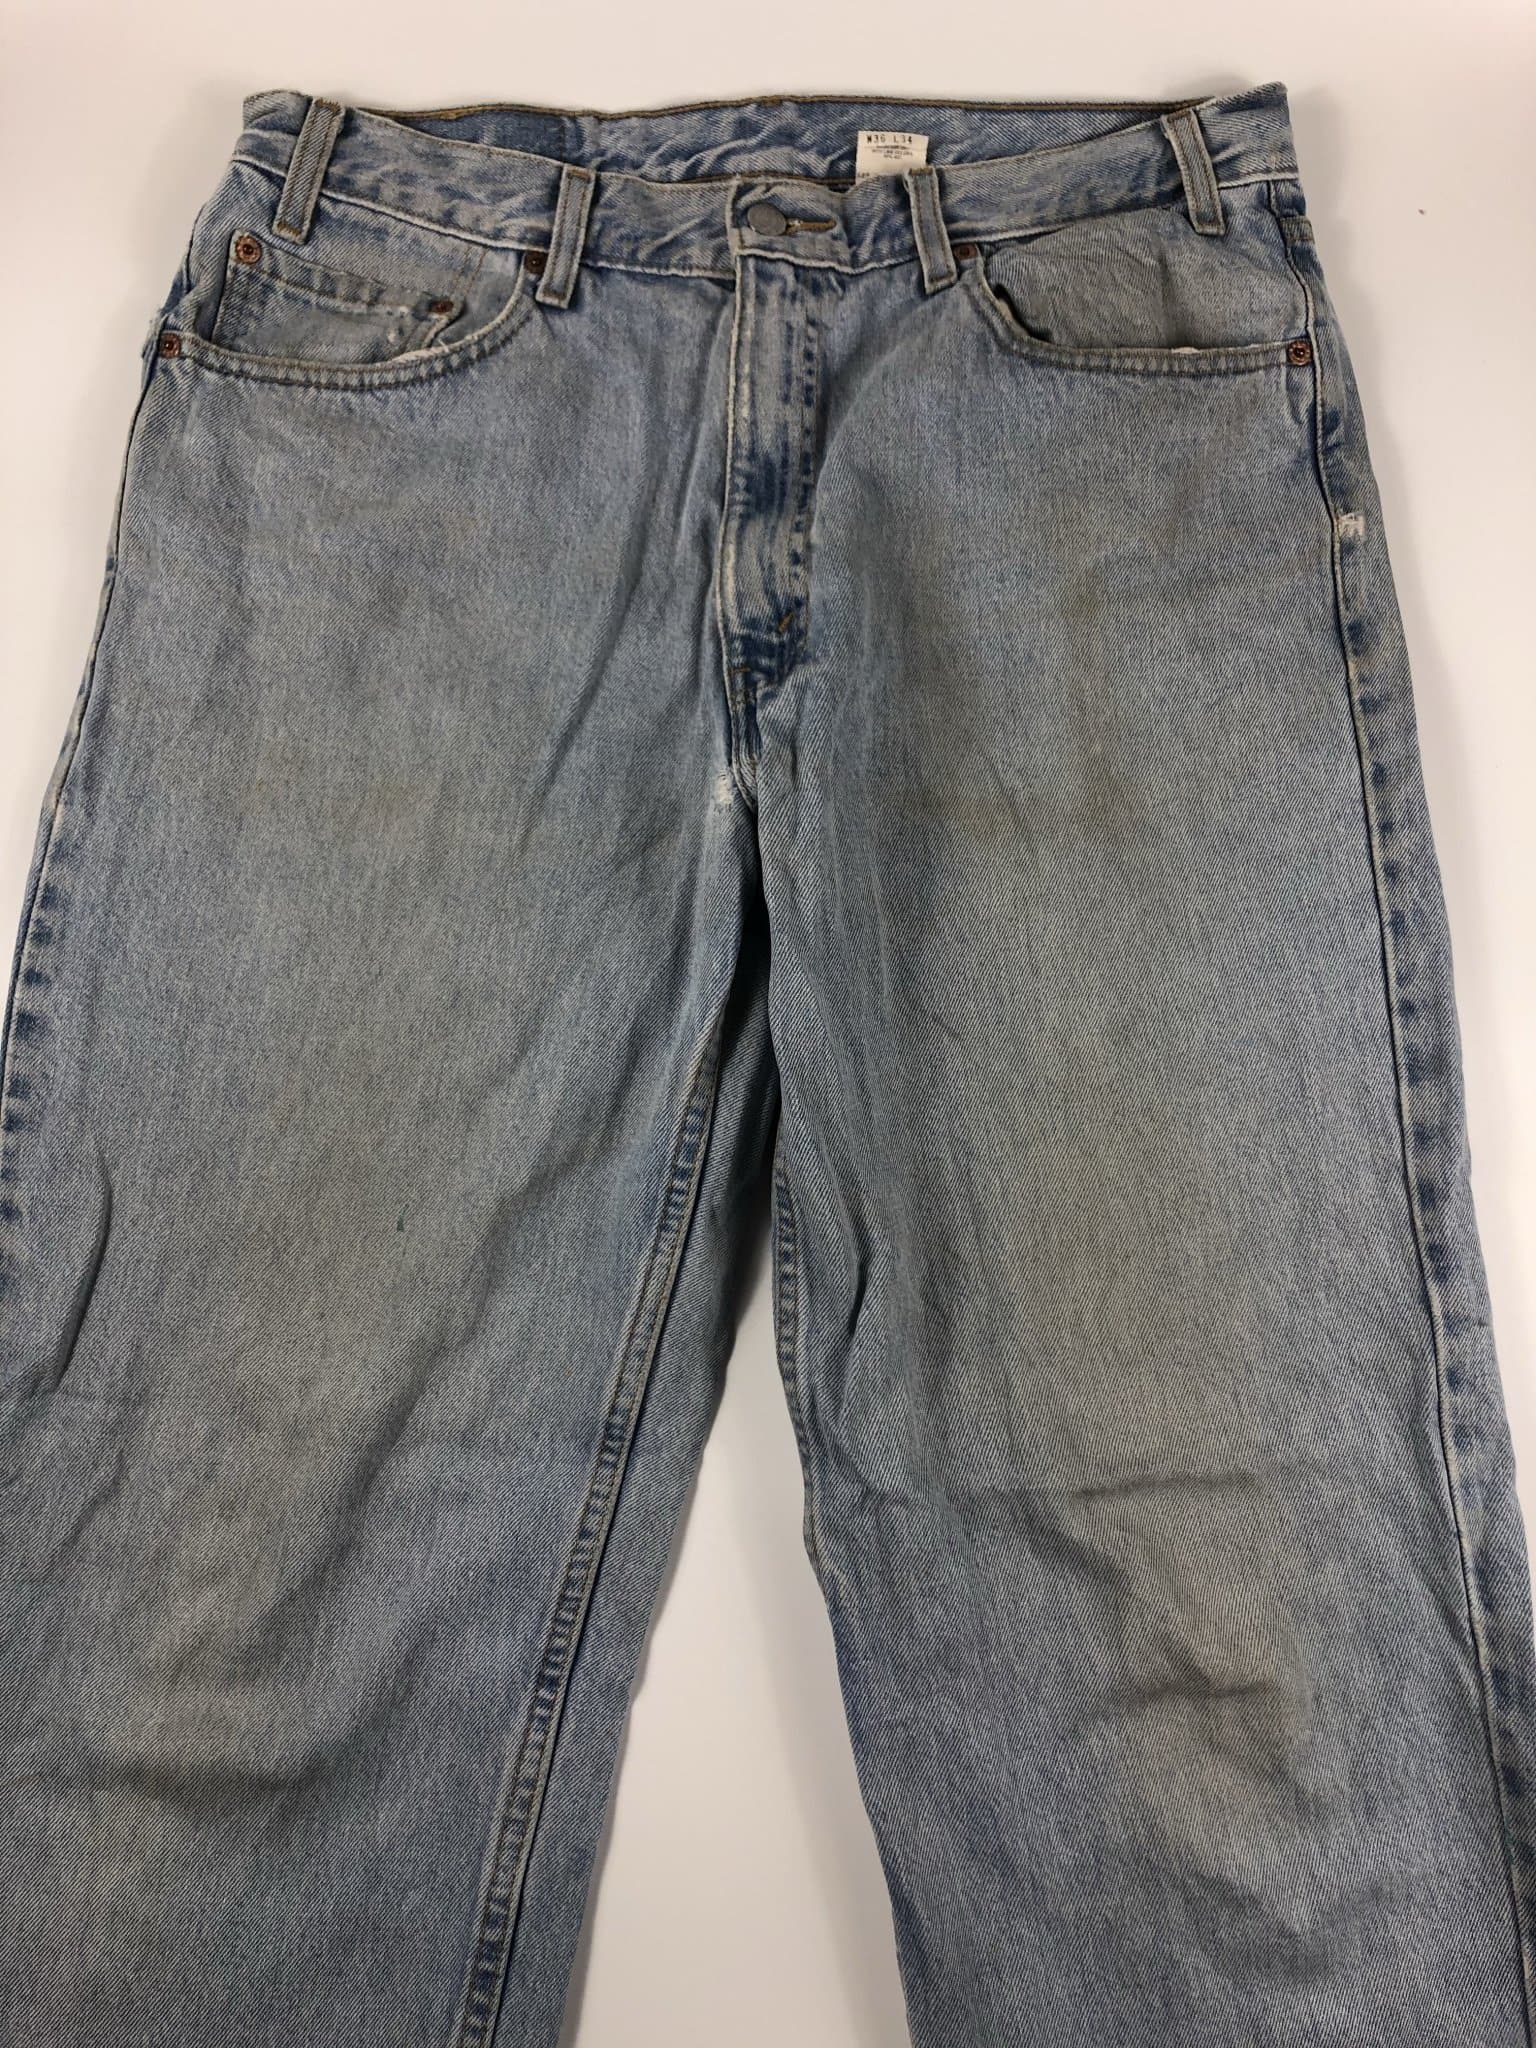 Vintage Levi's Classic 550 Jeans W36 L34 (E5) - Discounted Deals UK